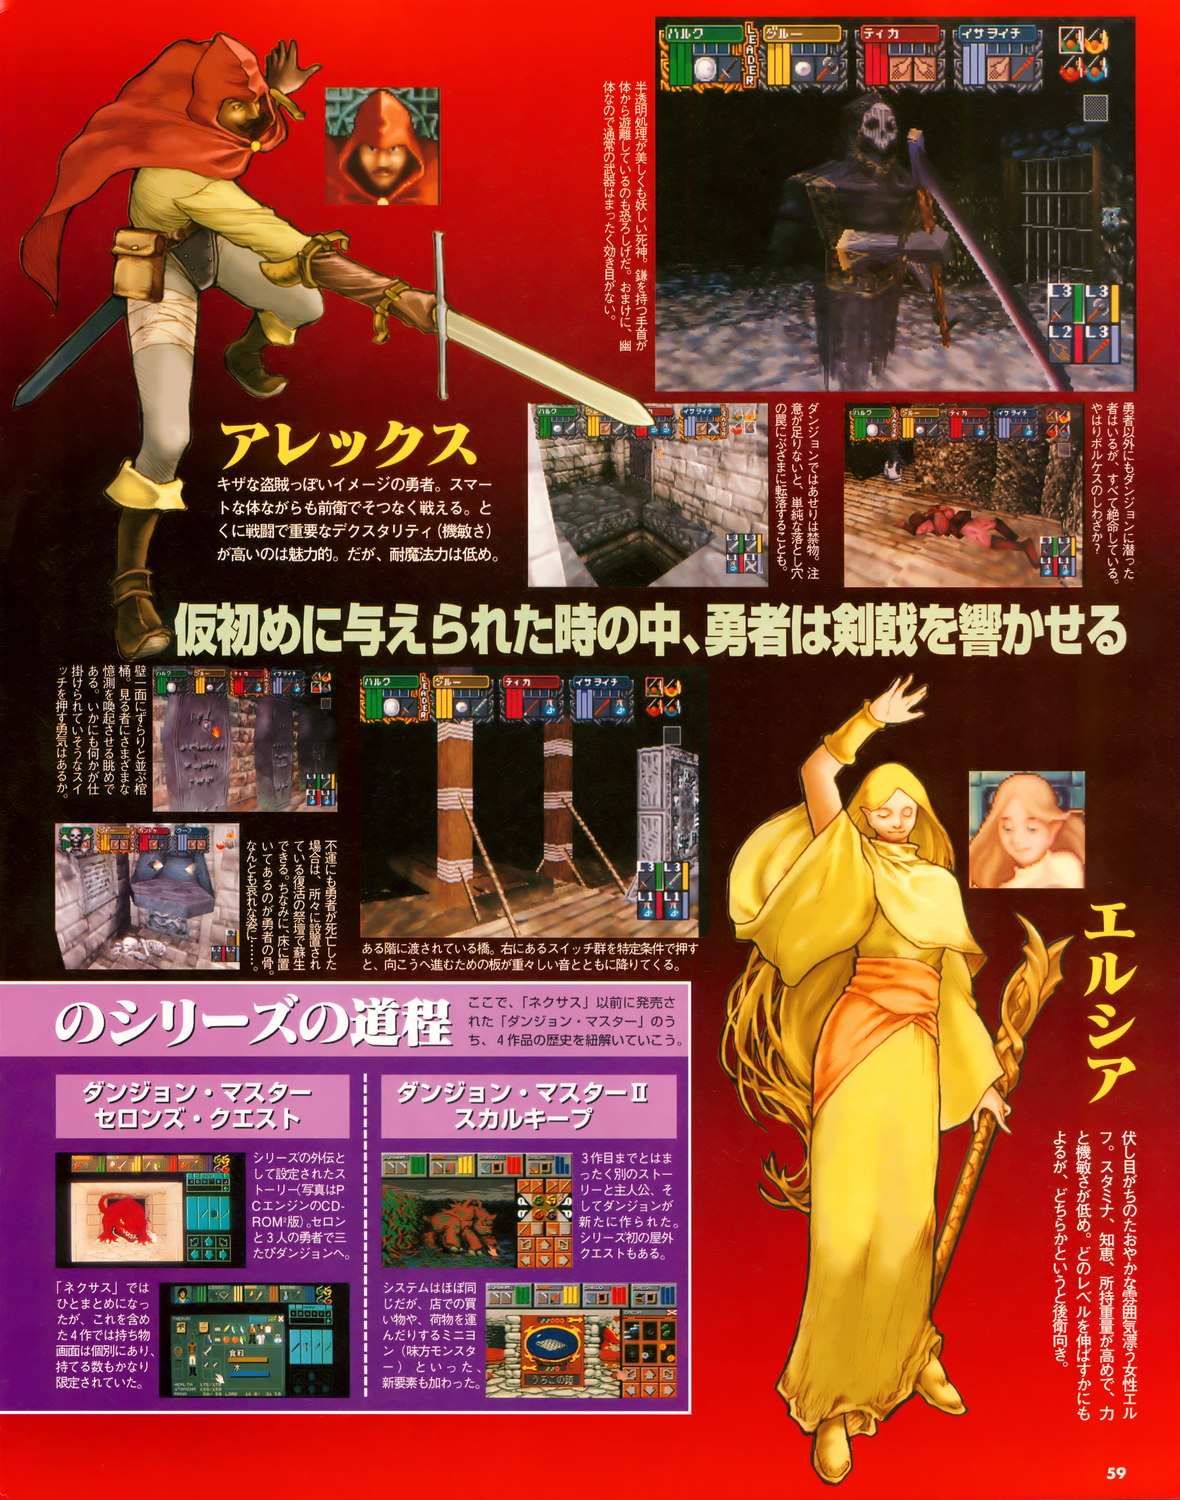 Dungeon Master Nexus Preview published in Japanese magazine 'Sega Saturn Magazine', Vol 9 27 March 1998, Page 59